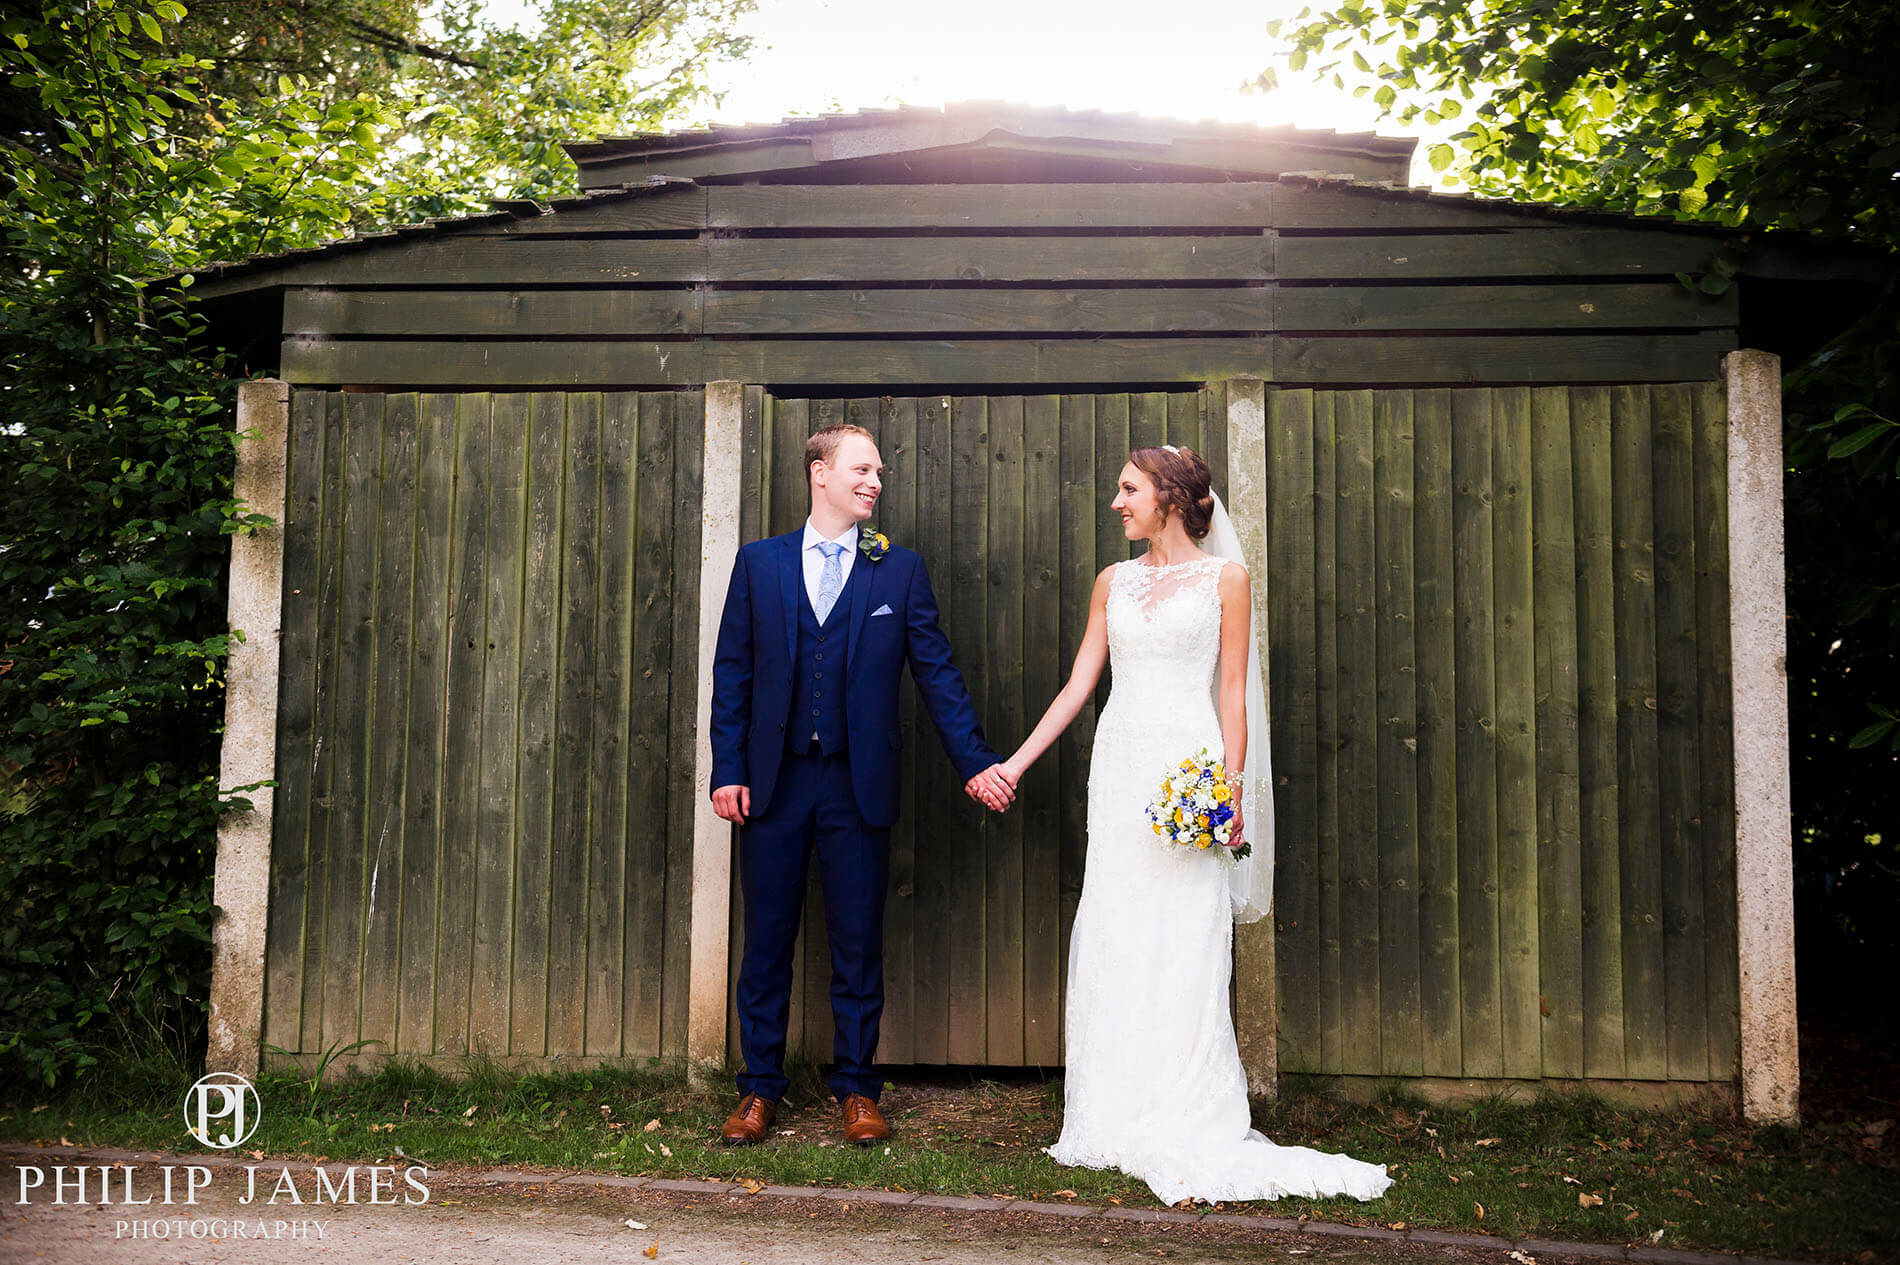 Birmingham Wedding Photographer - Philip James Photography based in Solihull (45 of 68)